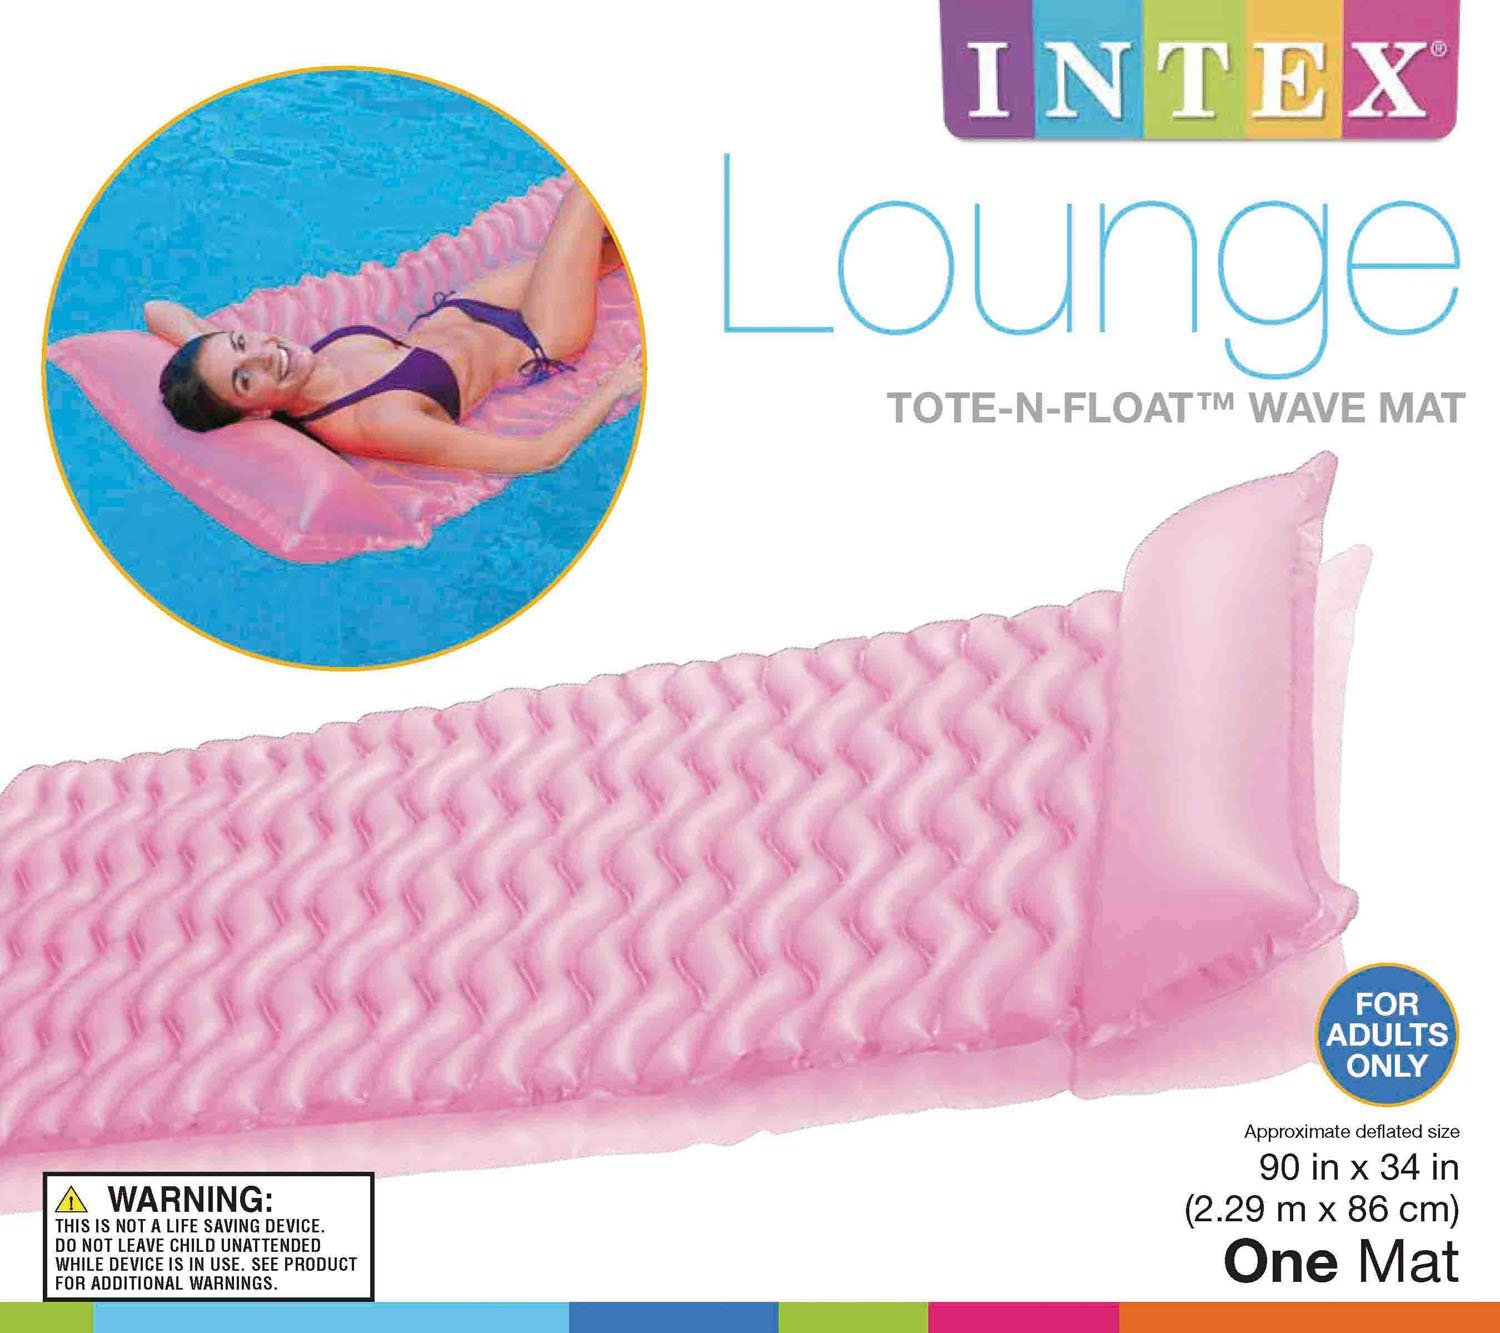 Intex Tote N Float Wave Mat Floating Pool Lounger with Headrest 3 Pack